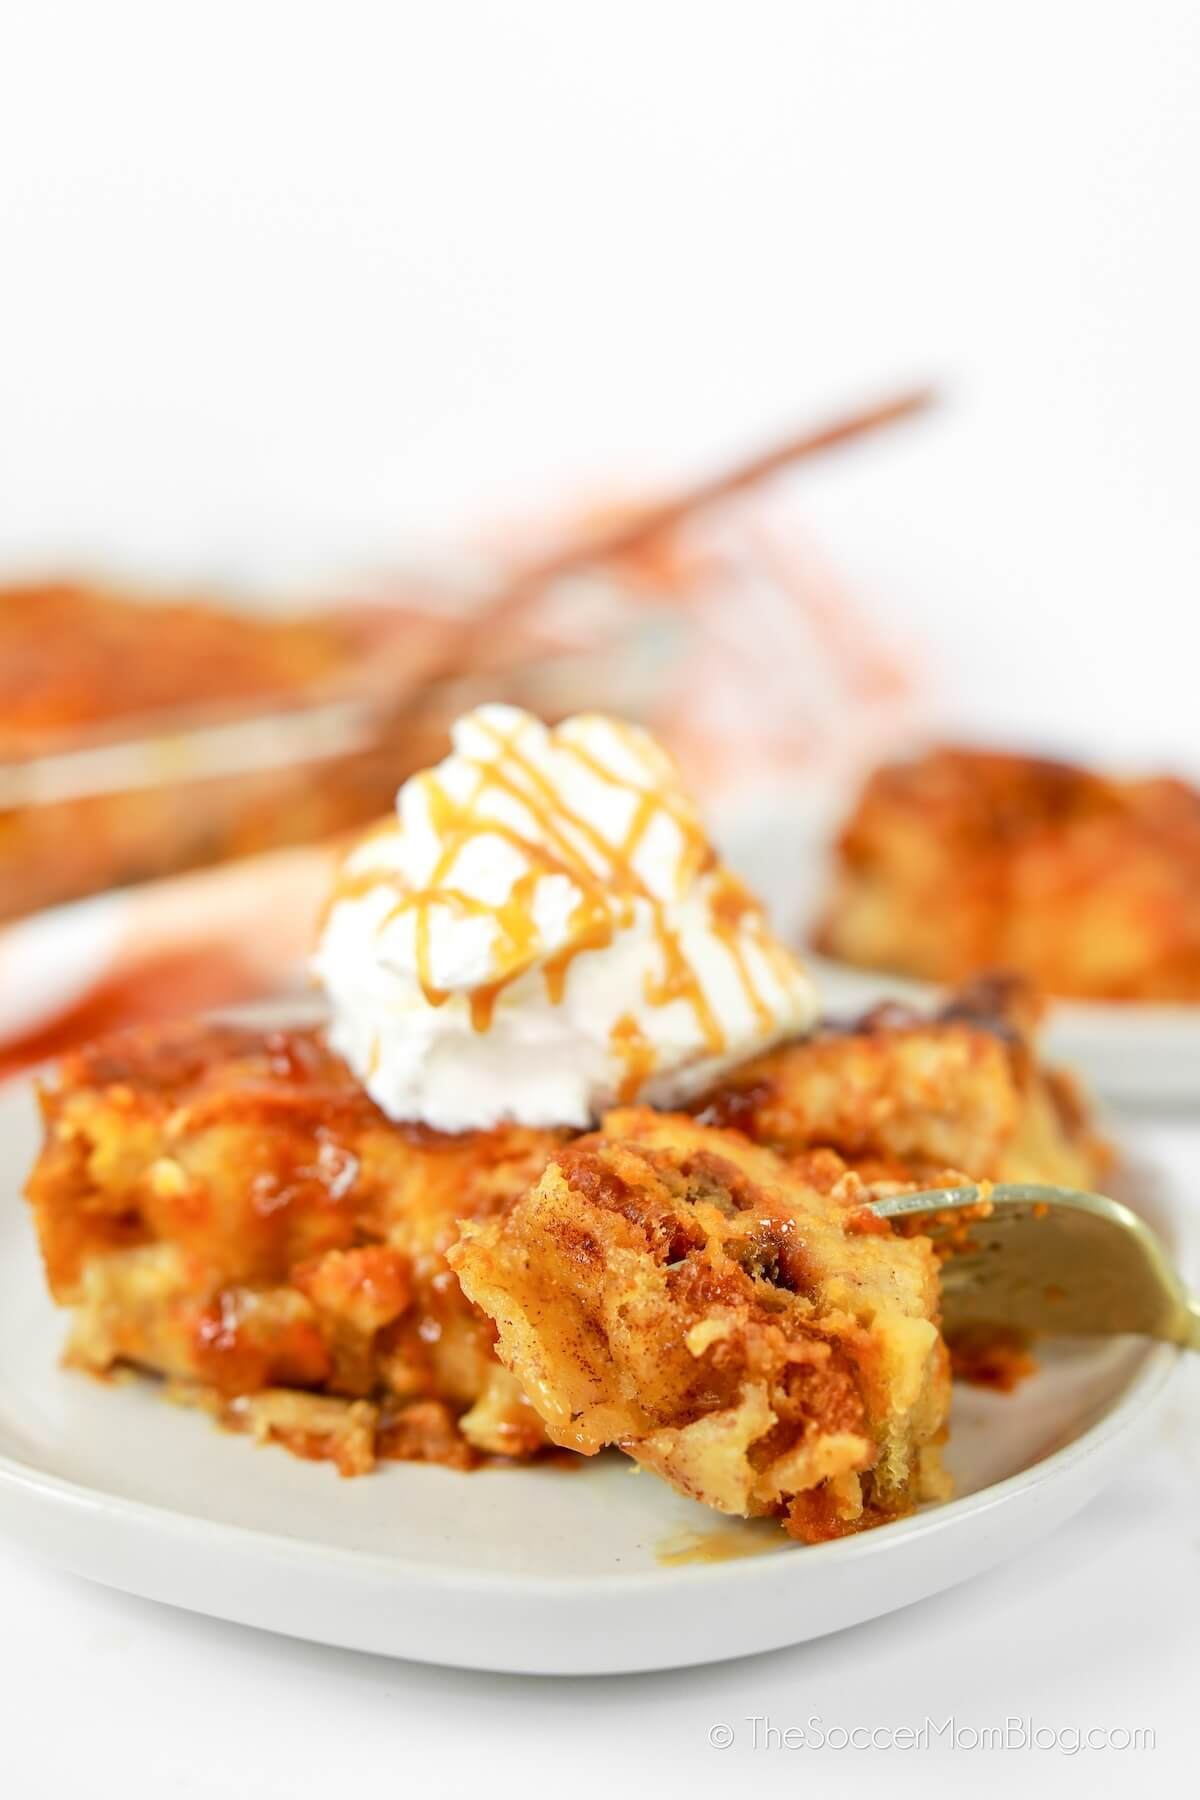 cutting into a slice of pumpkin bread pudding